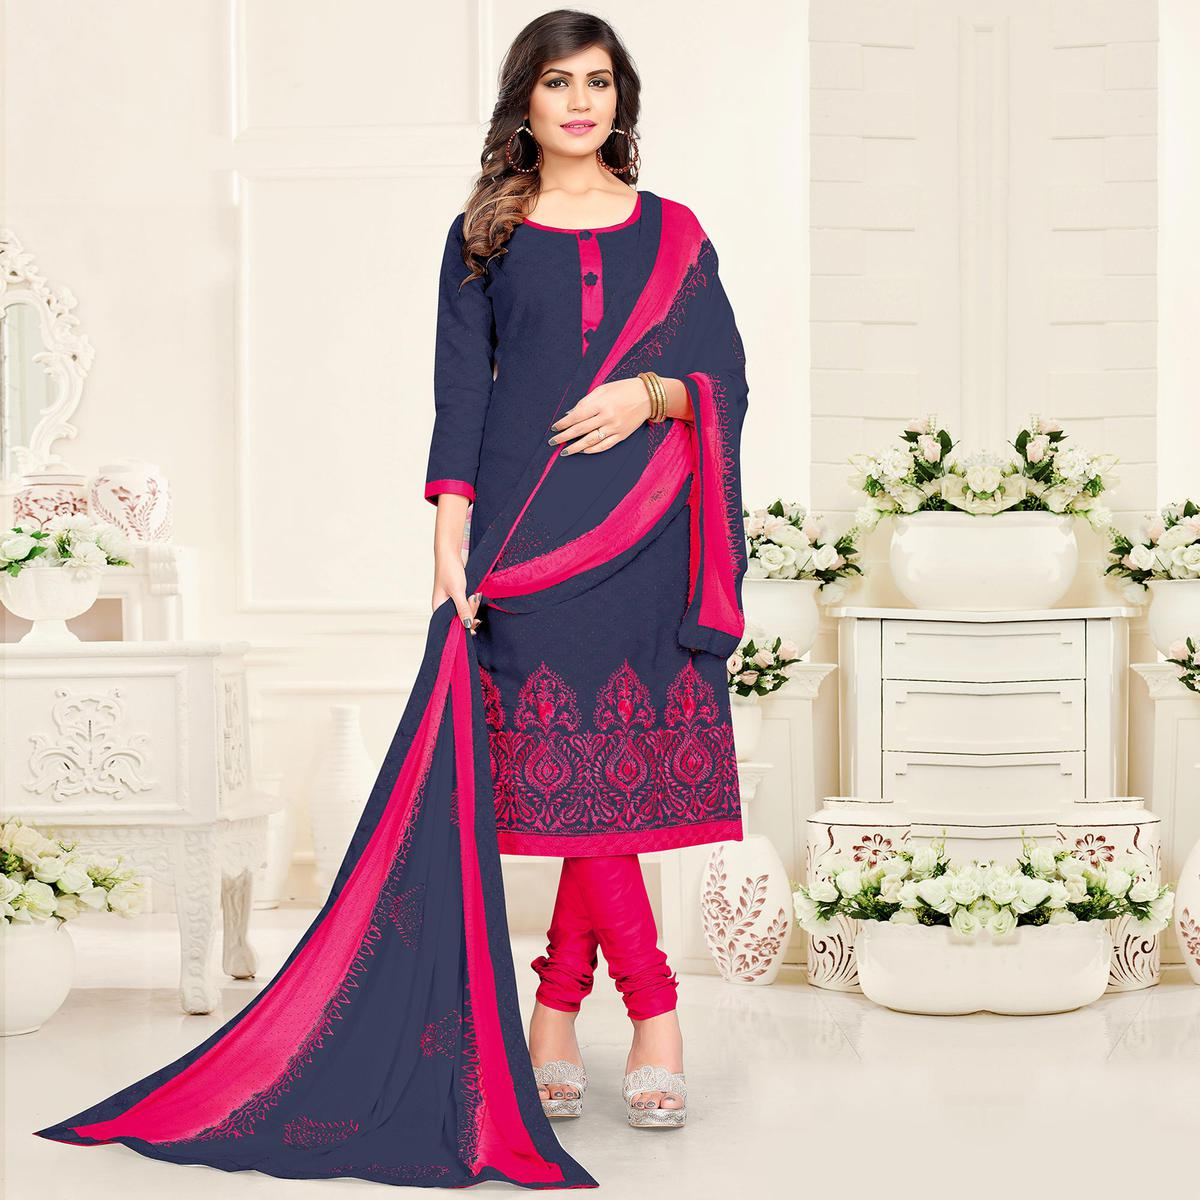 Ethnic Grey - Pink Colored Partywear Cotton Jacquard Suit